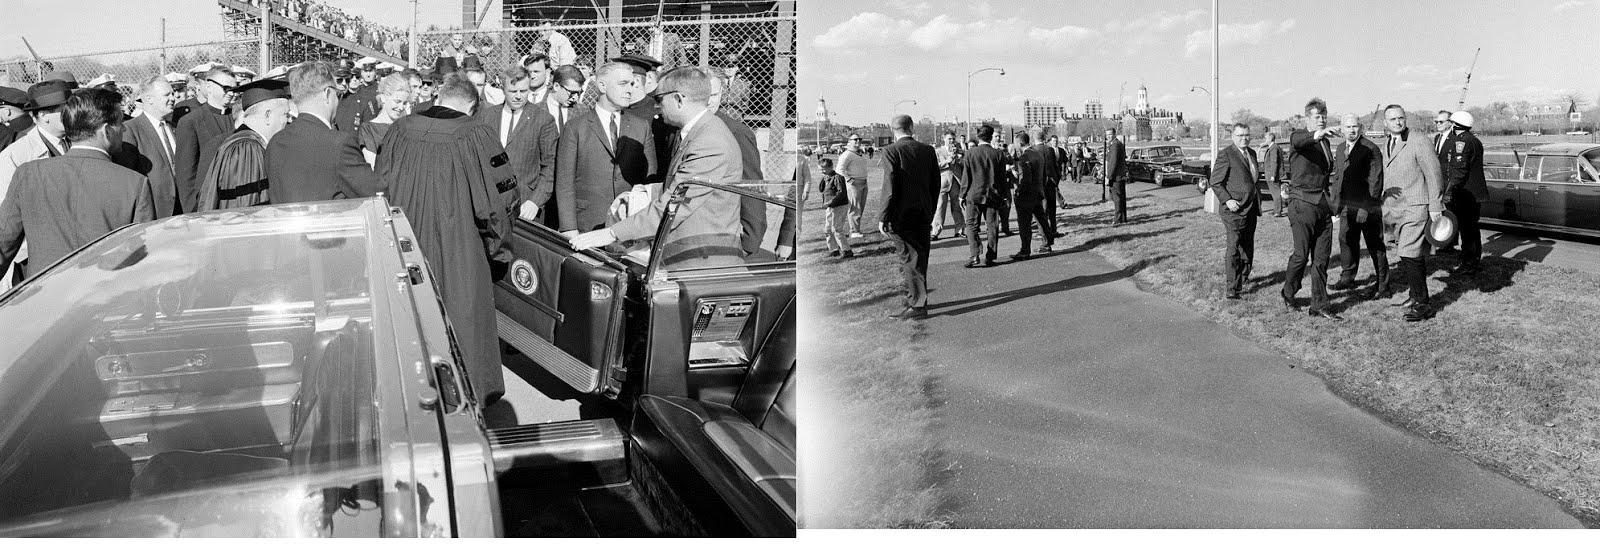 4/20/63, Boston, MA: JFK and, once again, the bubbletop he allegedly did not like